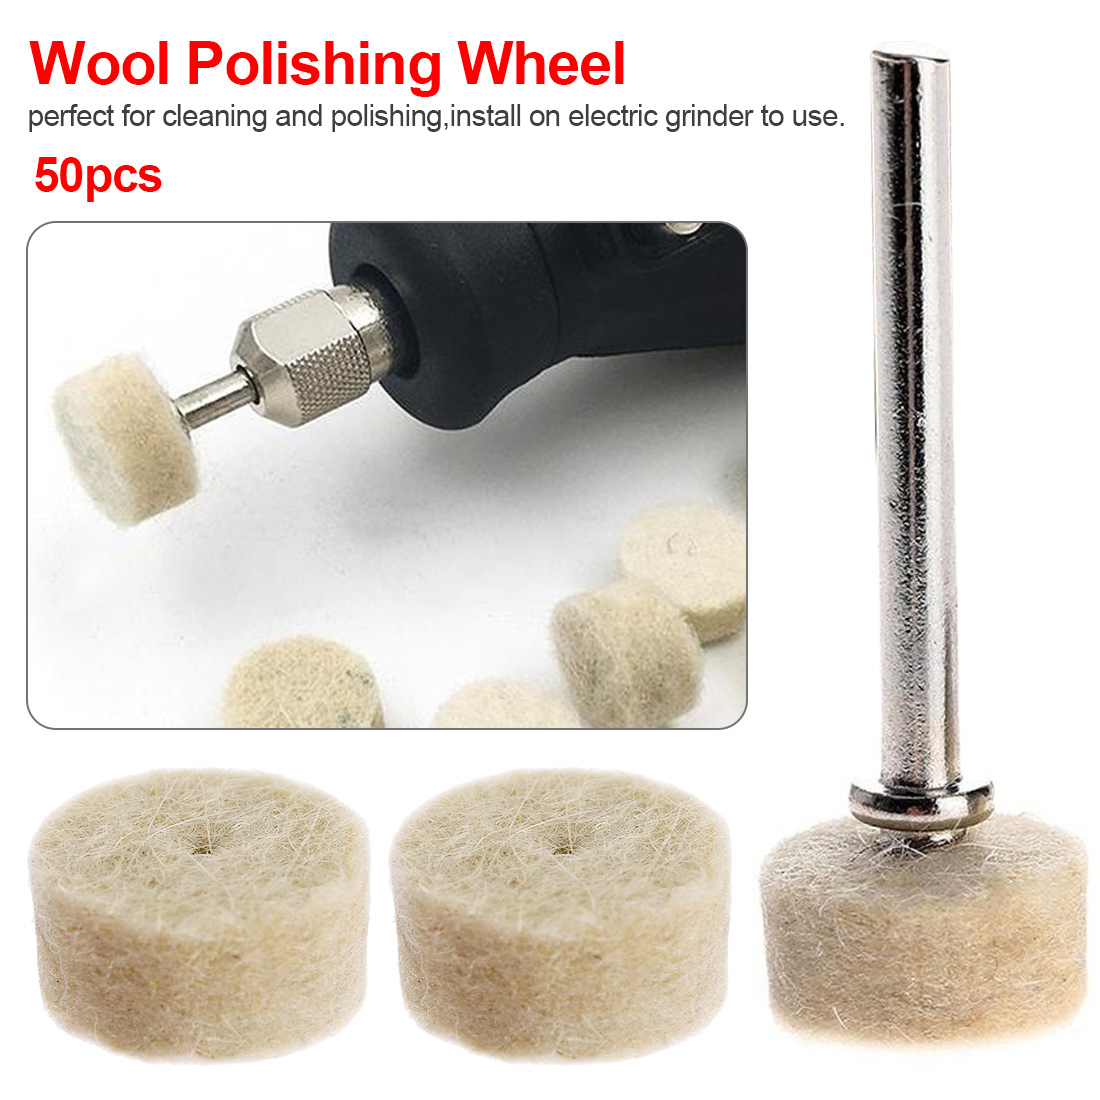 50pcs Buffing Wheel With 2Pcs 3.2mm Mandrel For Rotary Tool Grinding Polishing Pad Wool Felt Polishing